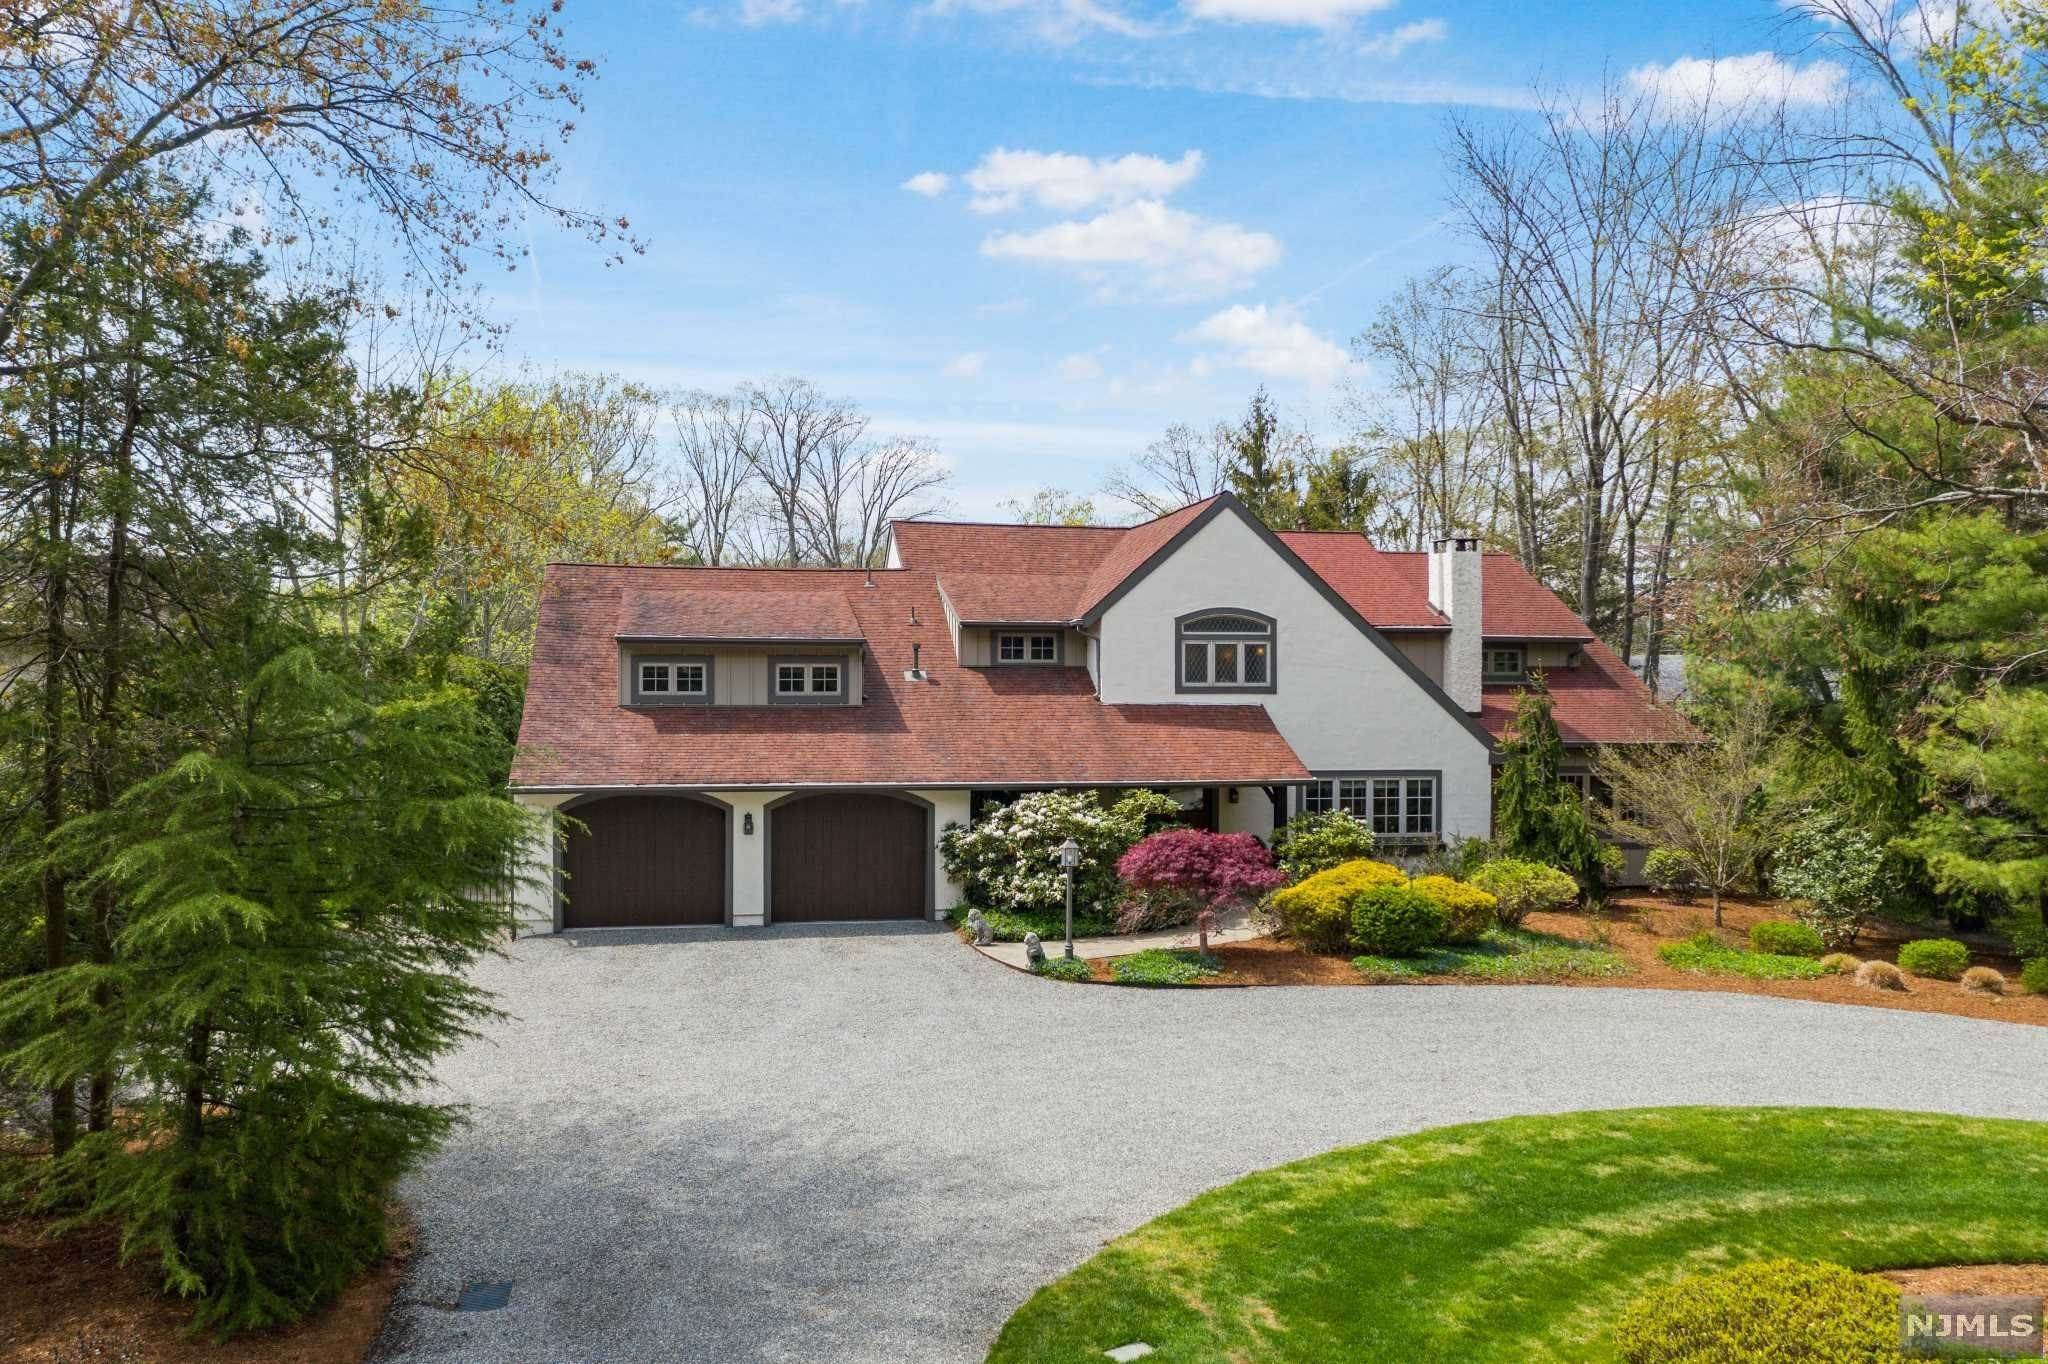 Single Family Home for Sale at 308 Pines Lake Drive Wayne, New Jersey, 07470 United States